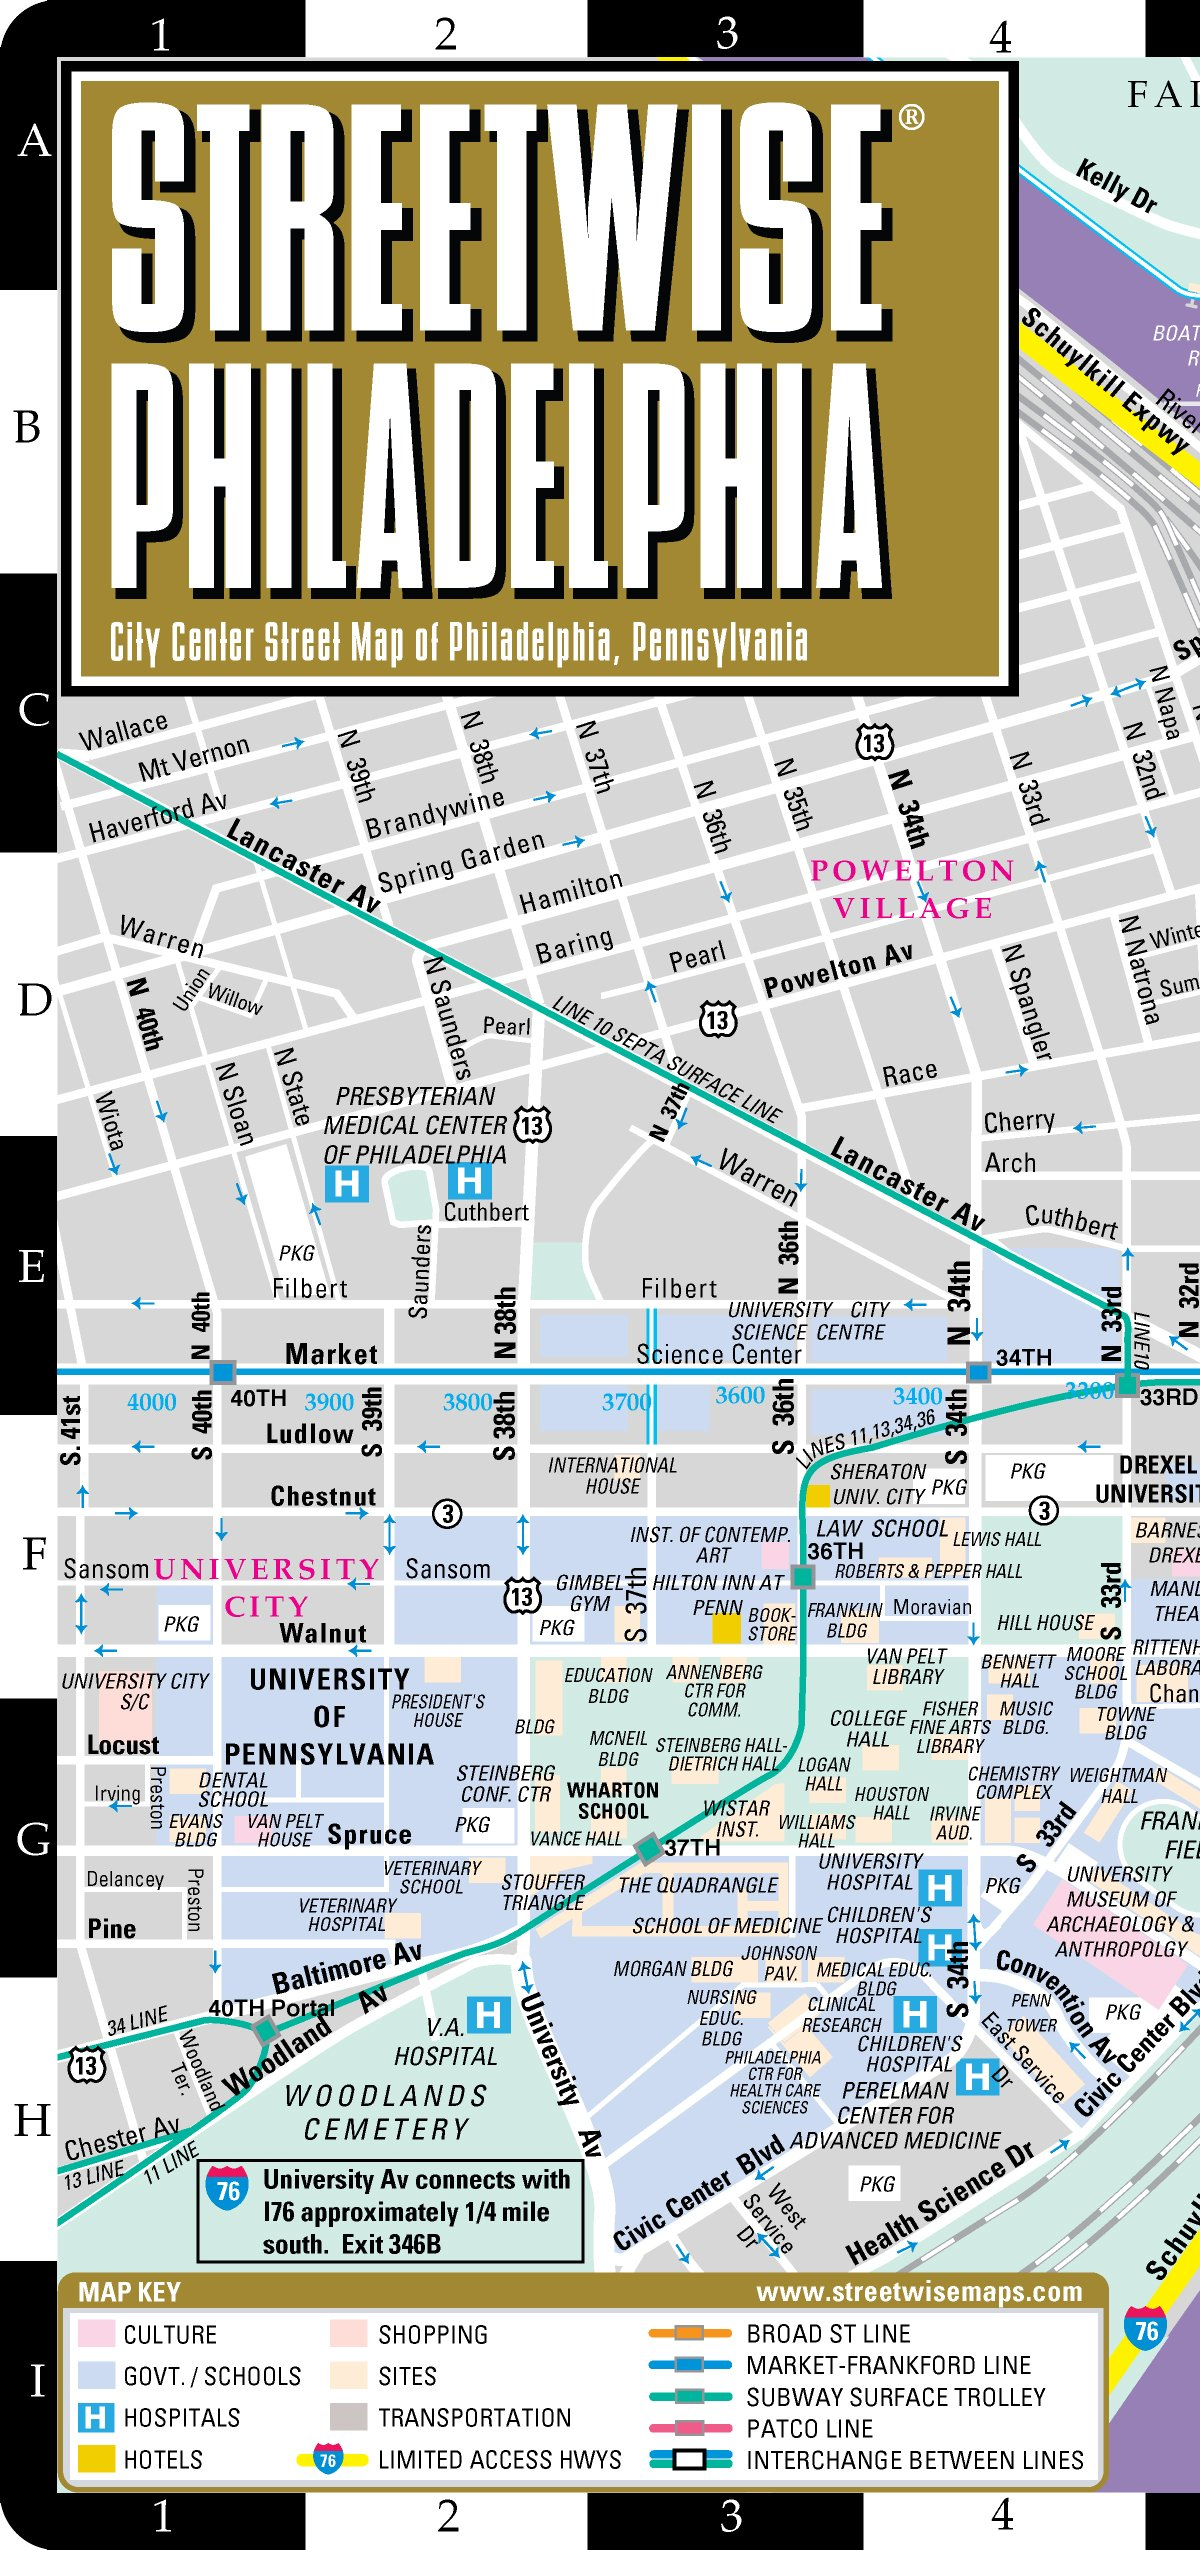 show me a map of philadelphia Streetwise Philadelphia Map Laminated City Center Street Map Of show me a map of philadelphia